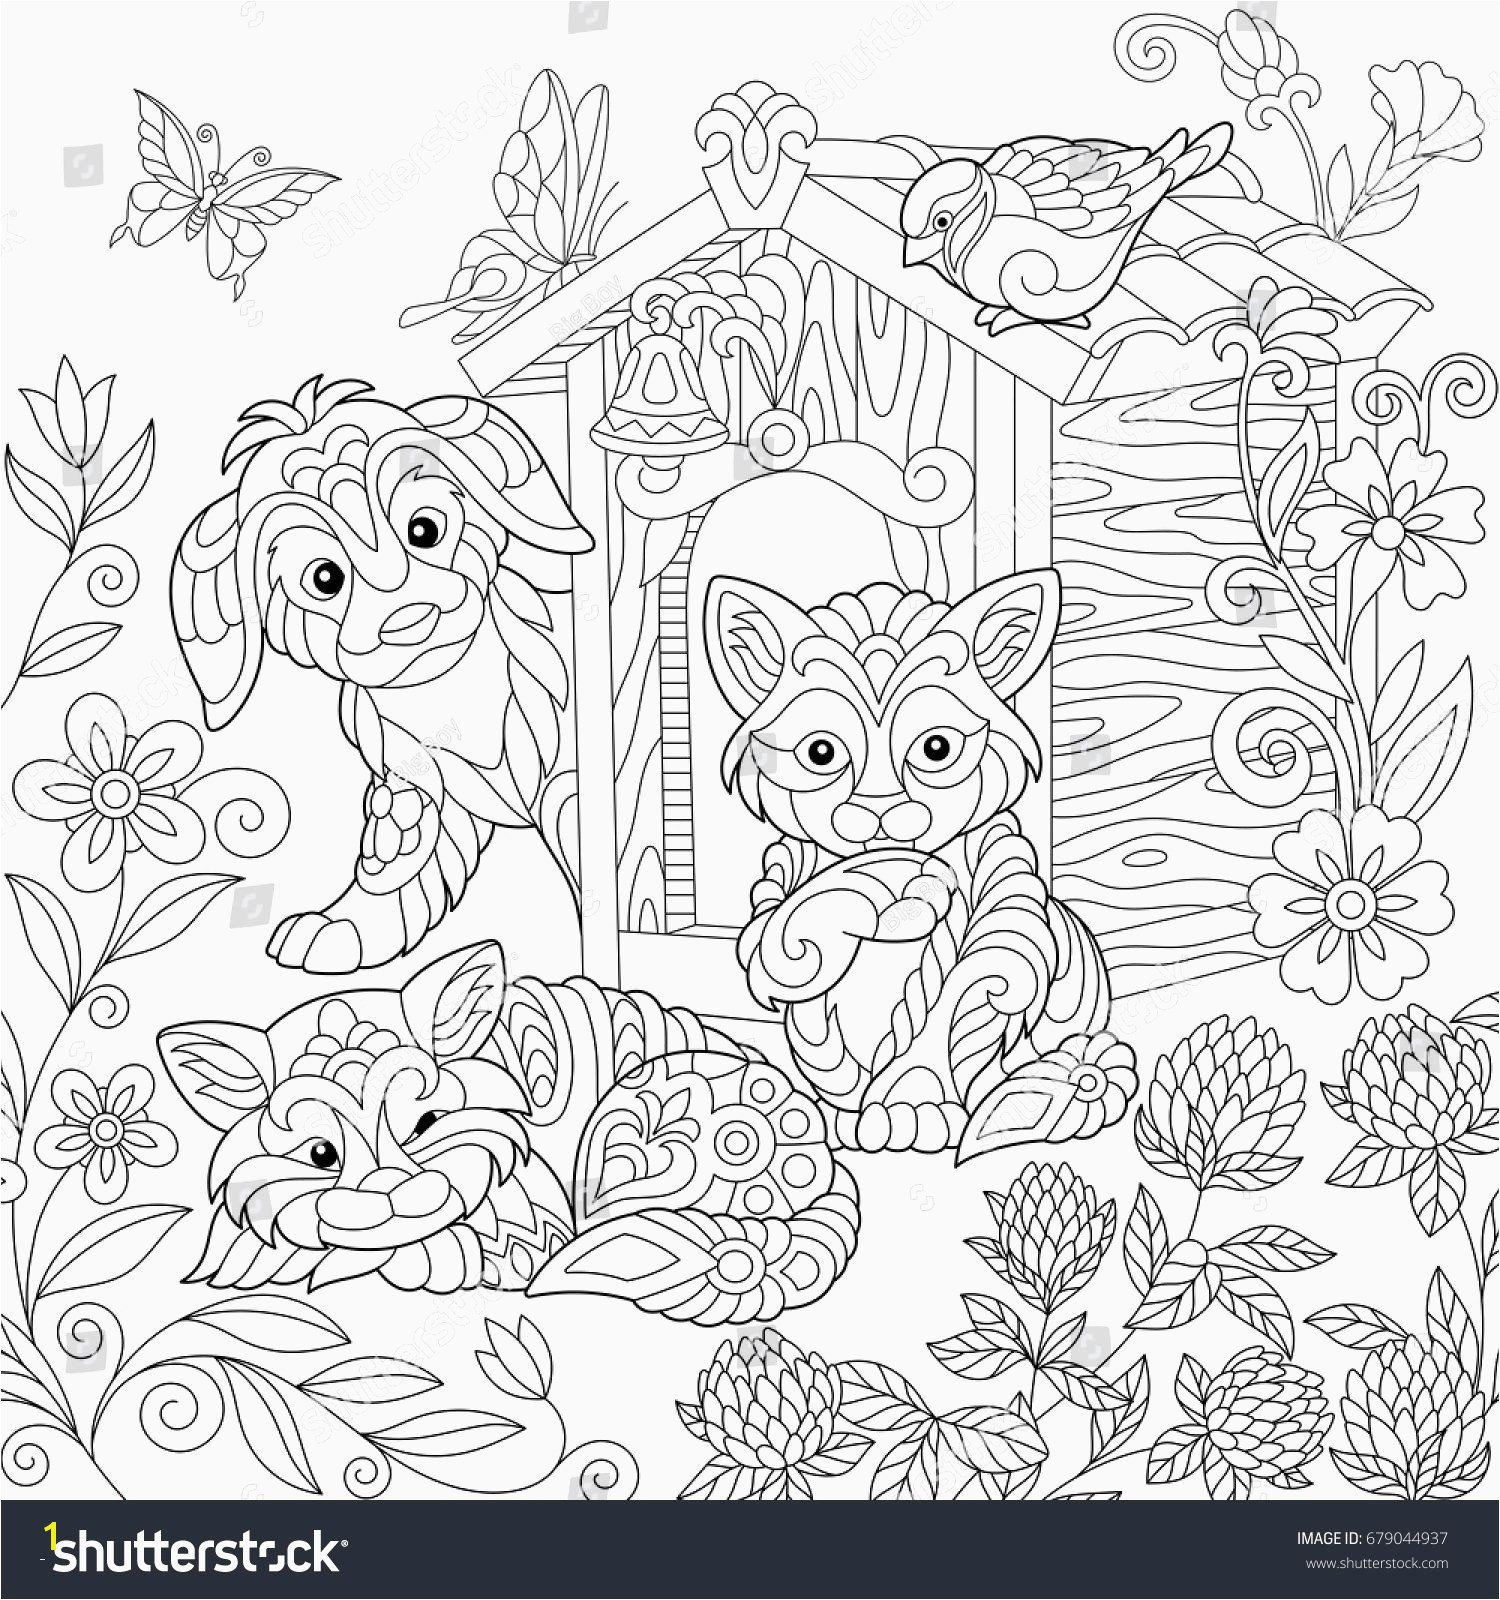 Scary Black Cat Coloring Pages Lovely Free Printable Halloween Coloring Heathermarxgallery Scary Black Cat Coloring